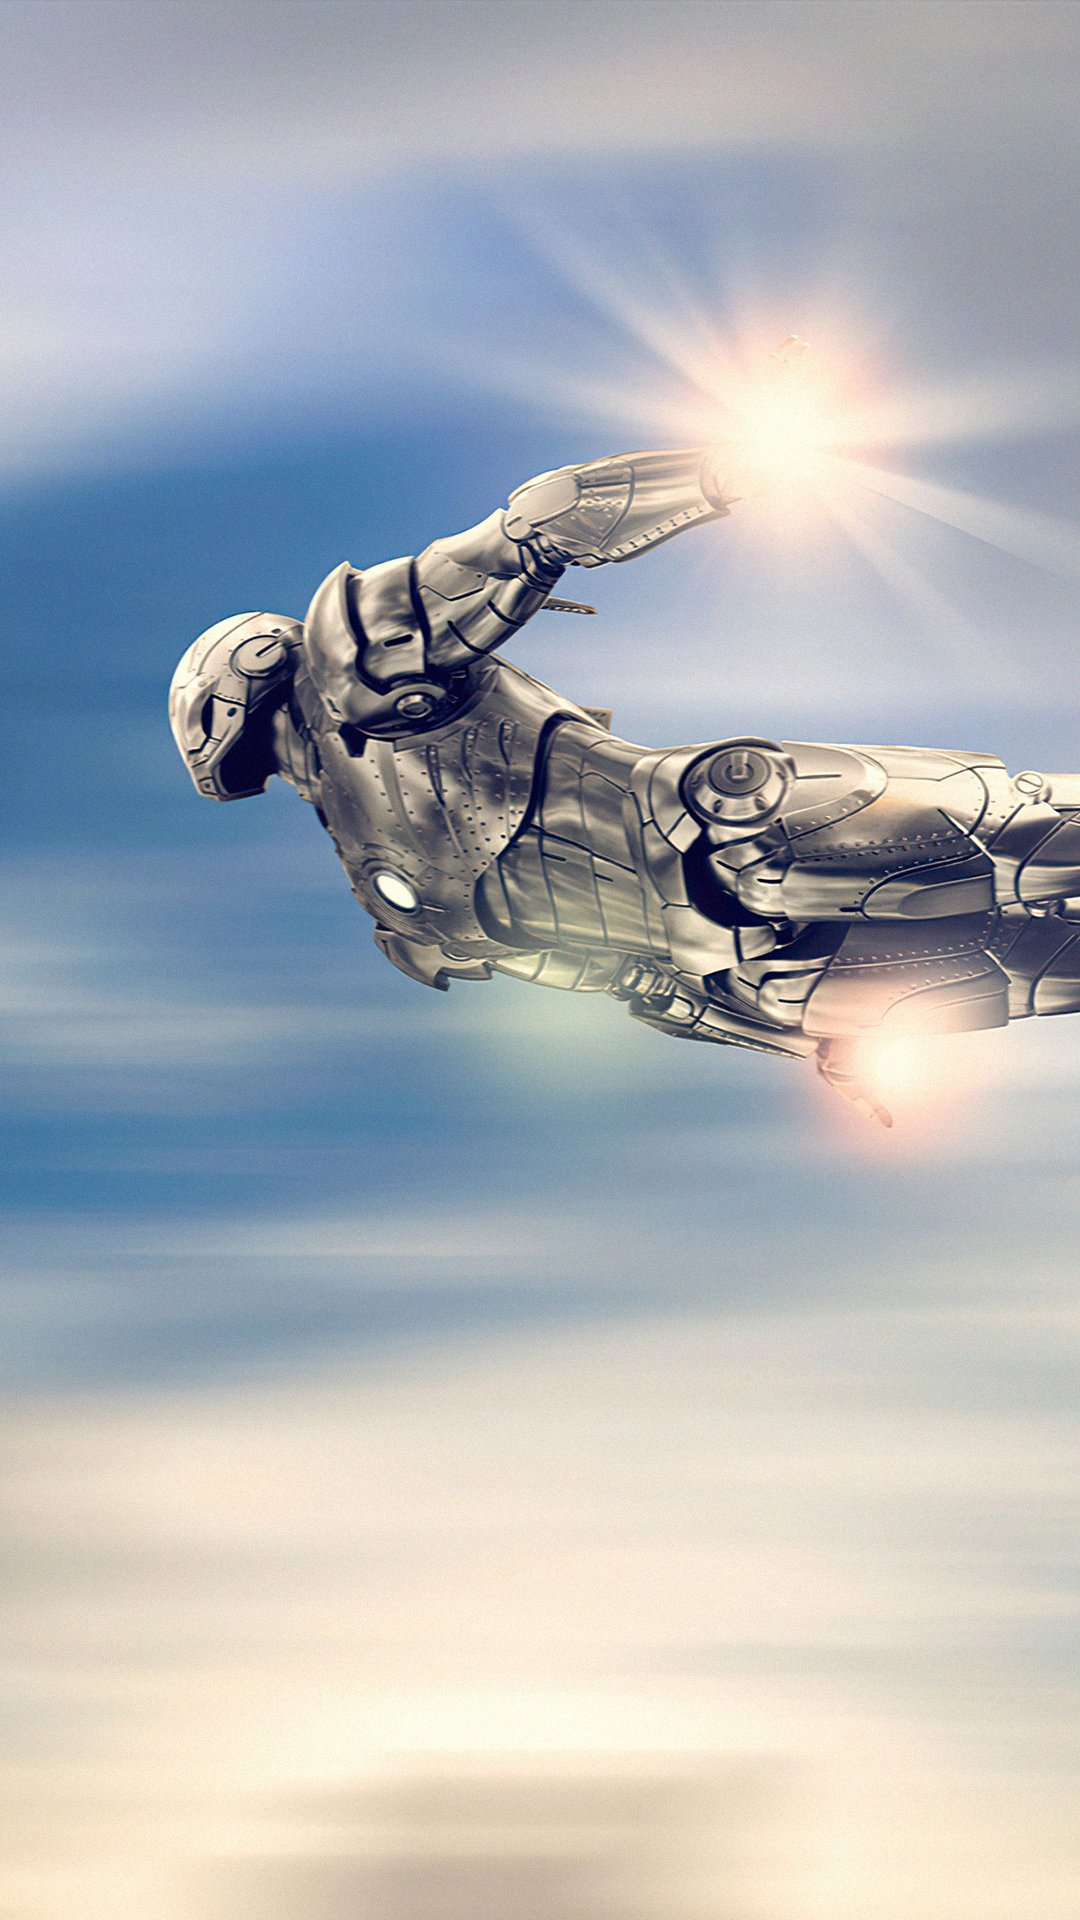 Wallpaper Iron man silver suit flying Vertical